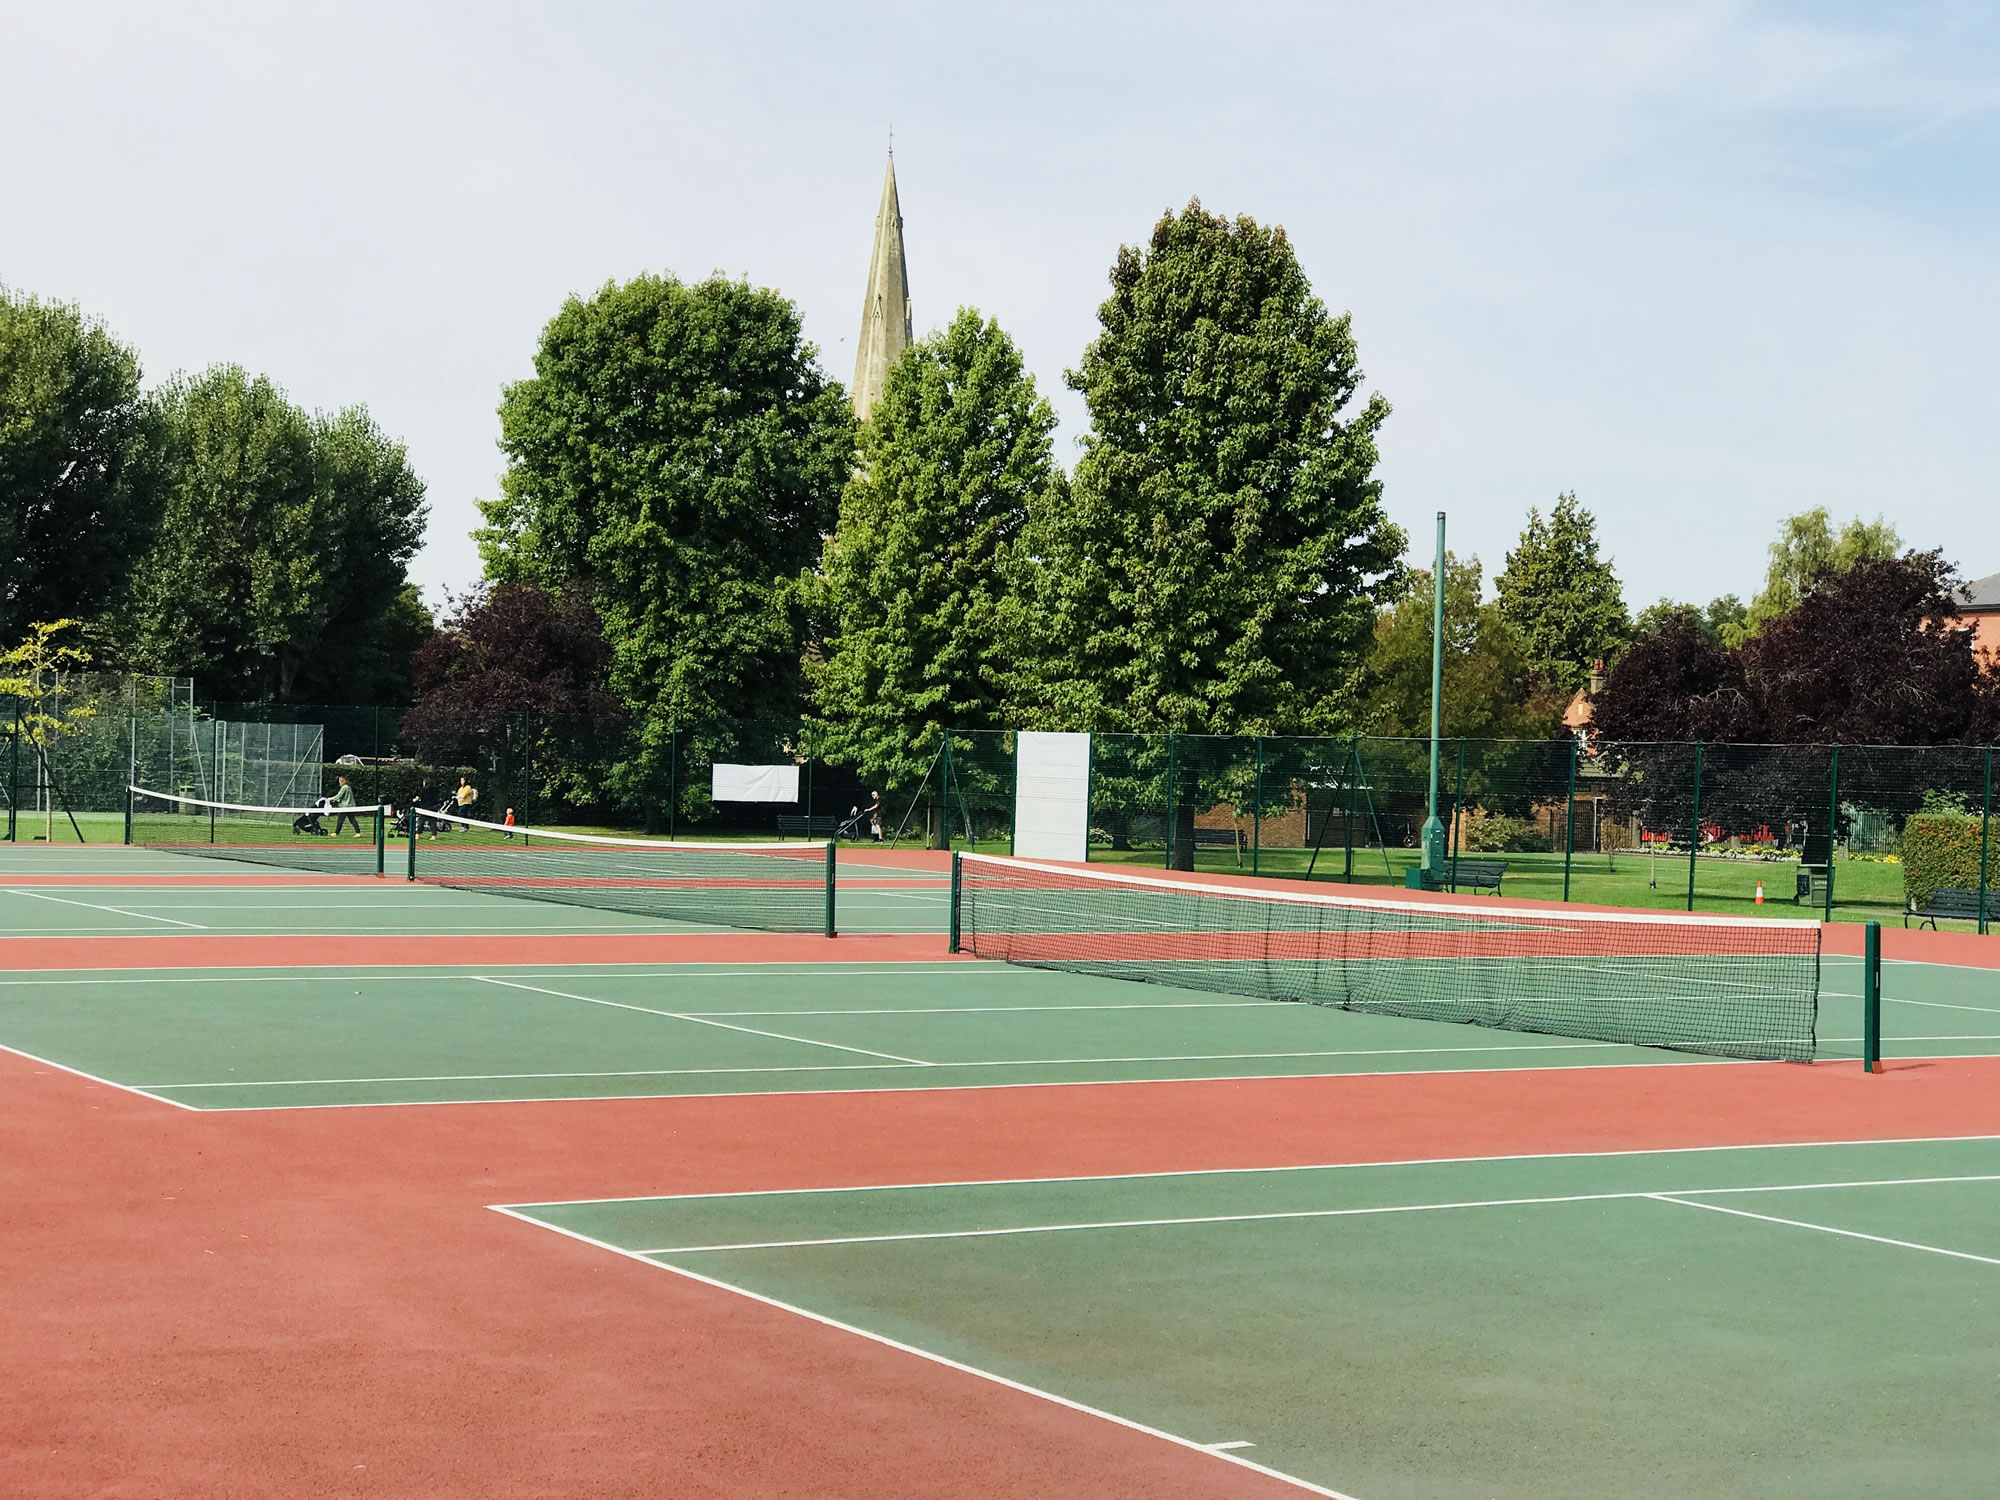 Tennis Courts - Churchfields Recreation Ground Weybridge - Surrey Tennis in the Park